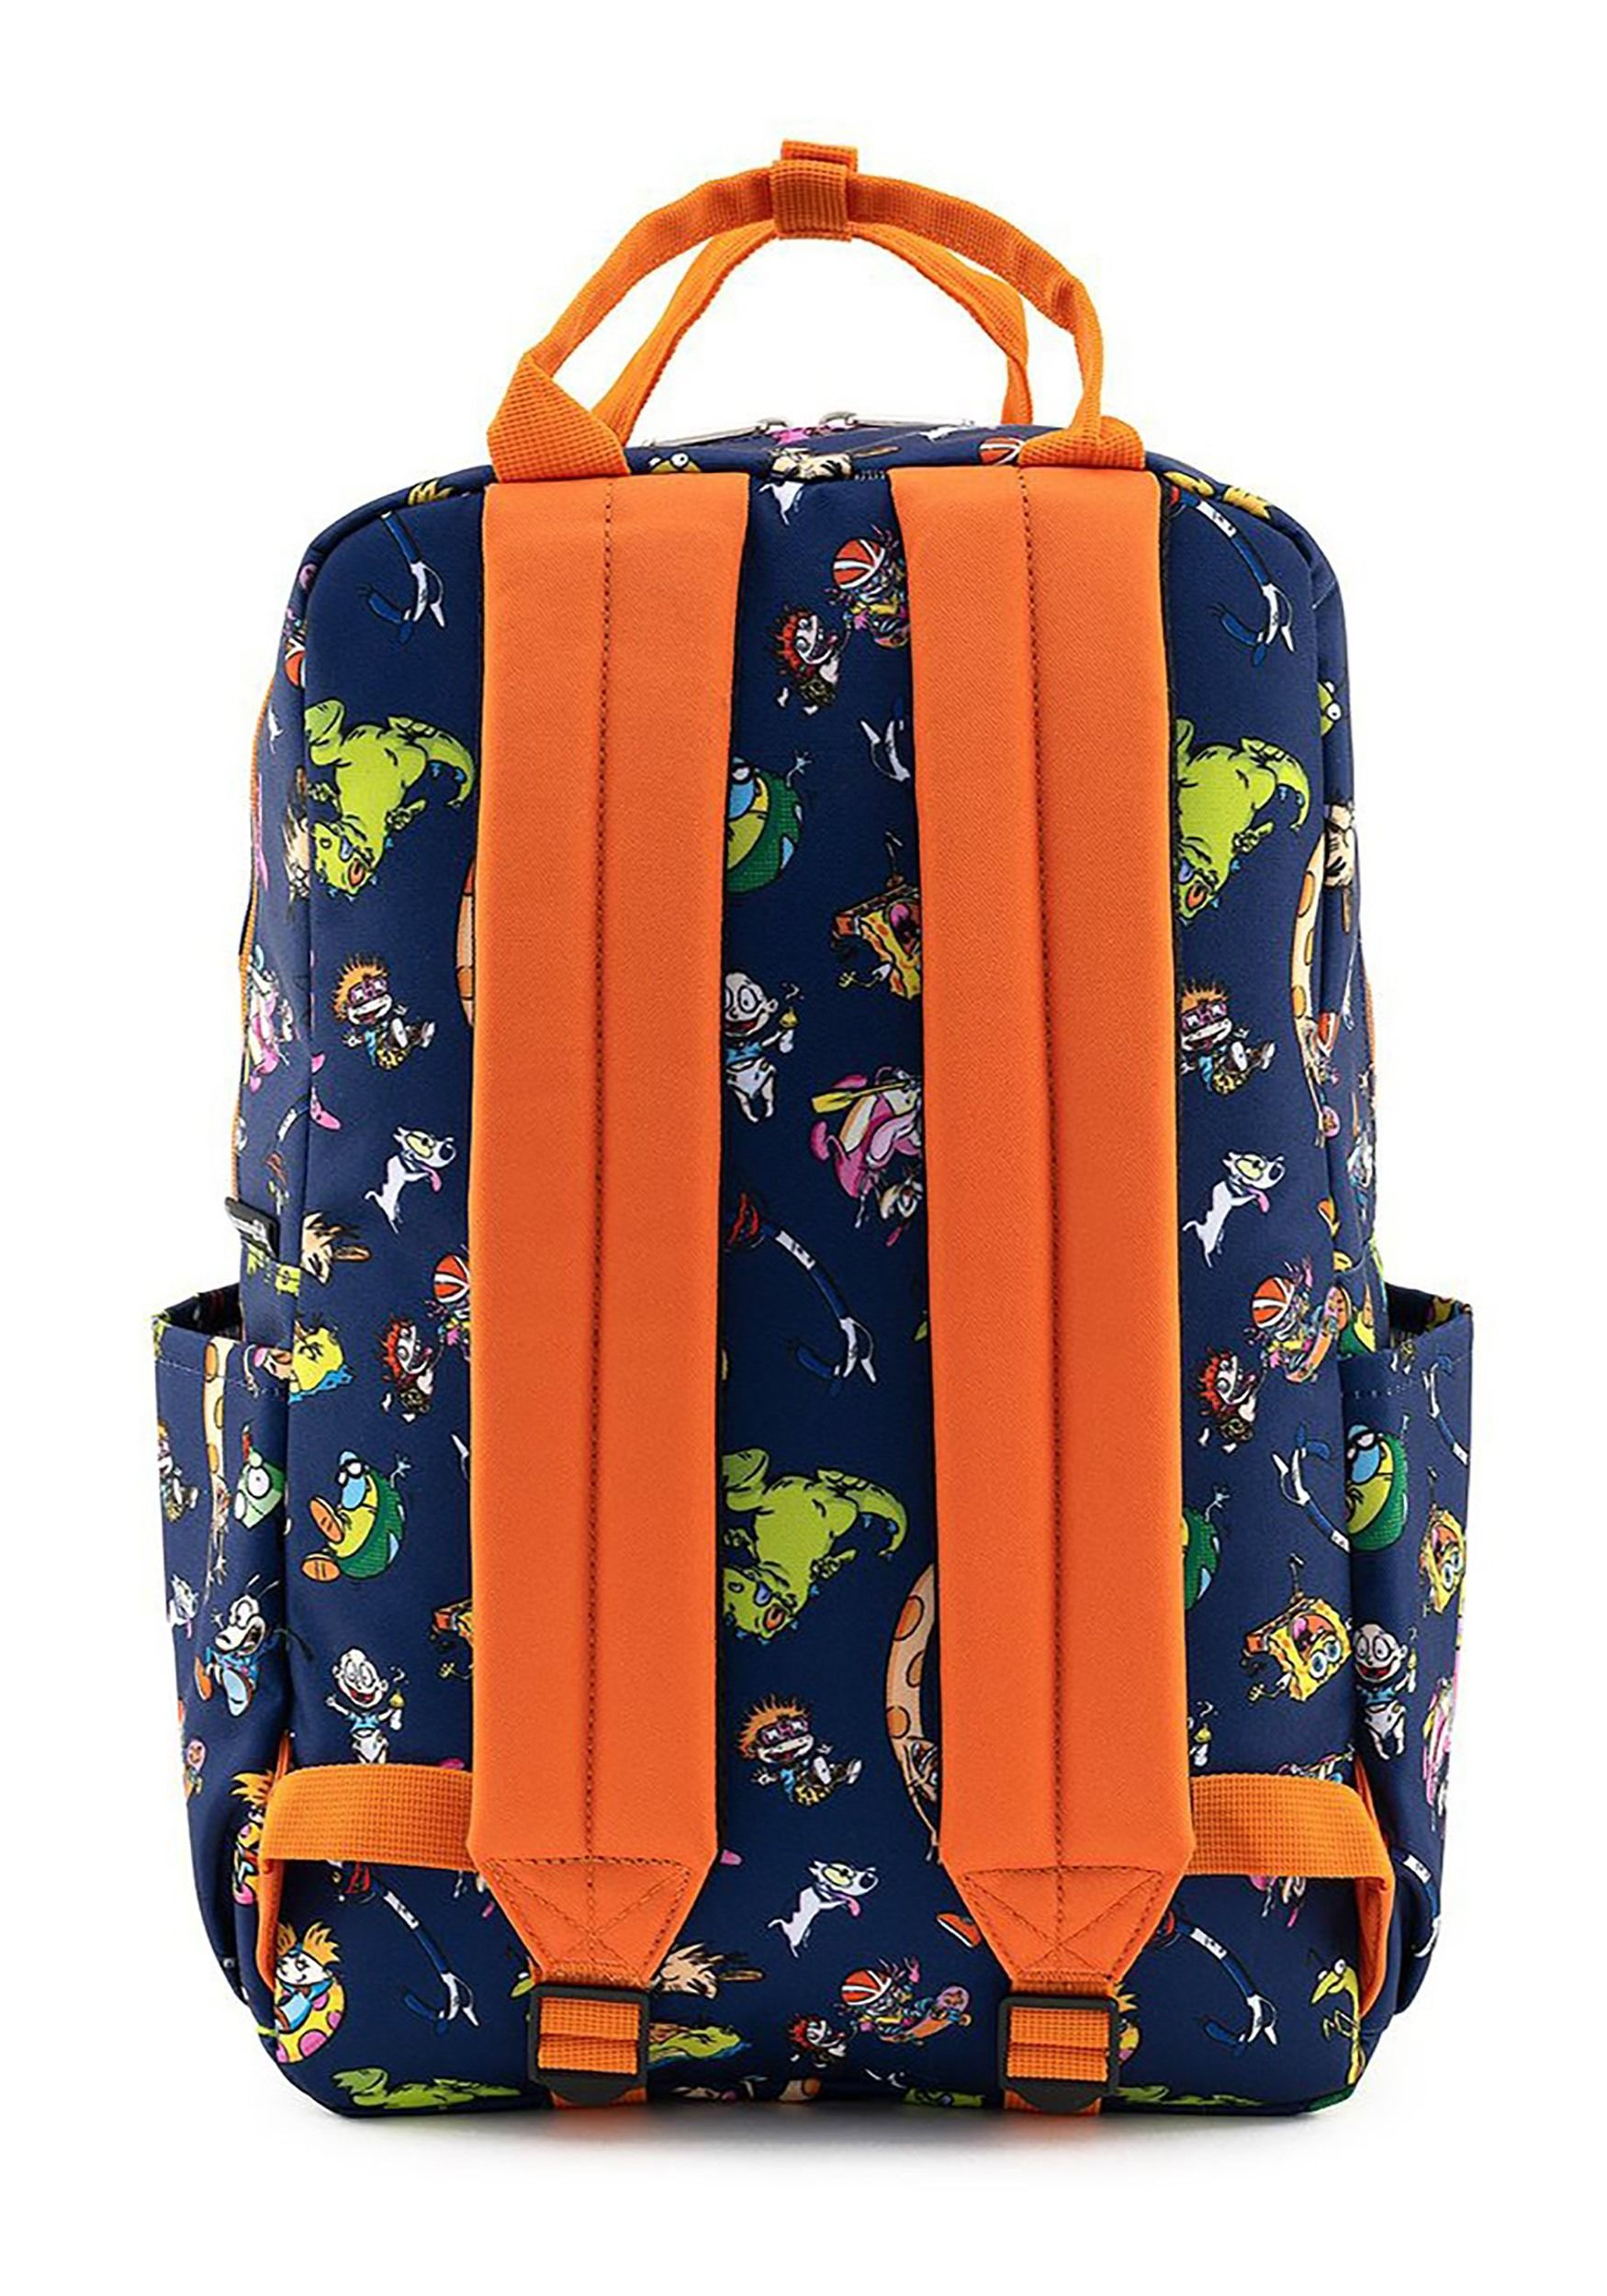 Cartoon Essentials Rugrats, Rocko, CatDog. Monsters, SpongeBob, Rocket Power. Show your love for all your favorite Nickelodeon classics with this Loungefly Nickelodeon Retro Character Nylon Backpack! The sturdy canvas body features an all-over print of Nicktoons from Hey Arnold! to Invader Zim,andis sure to show the world your passion for quality 90s and early 00s animation while carrying all your essentials!